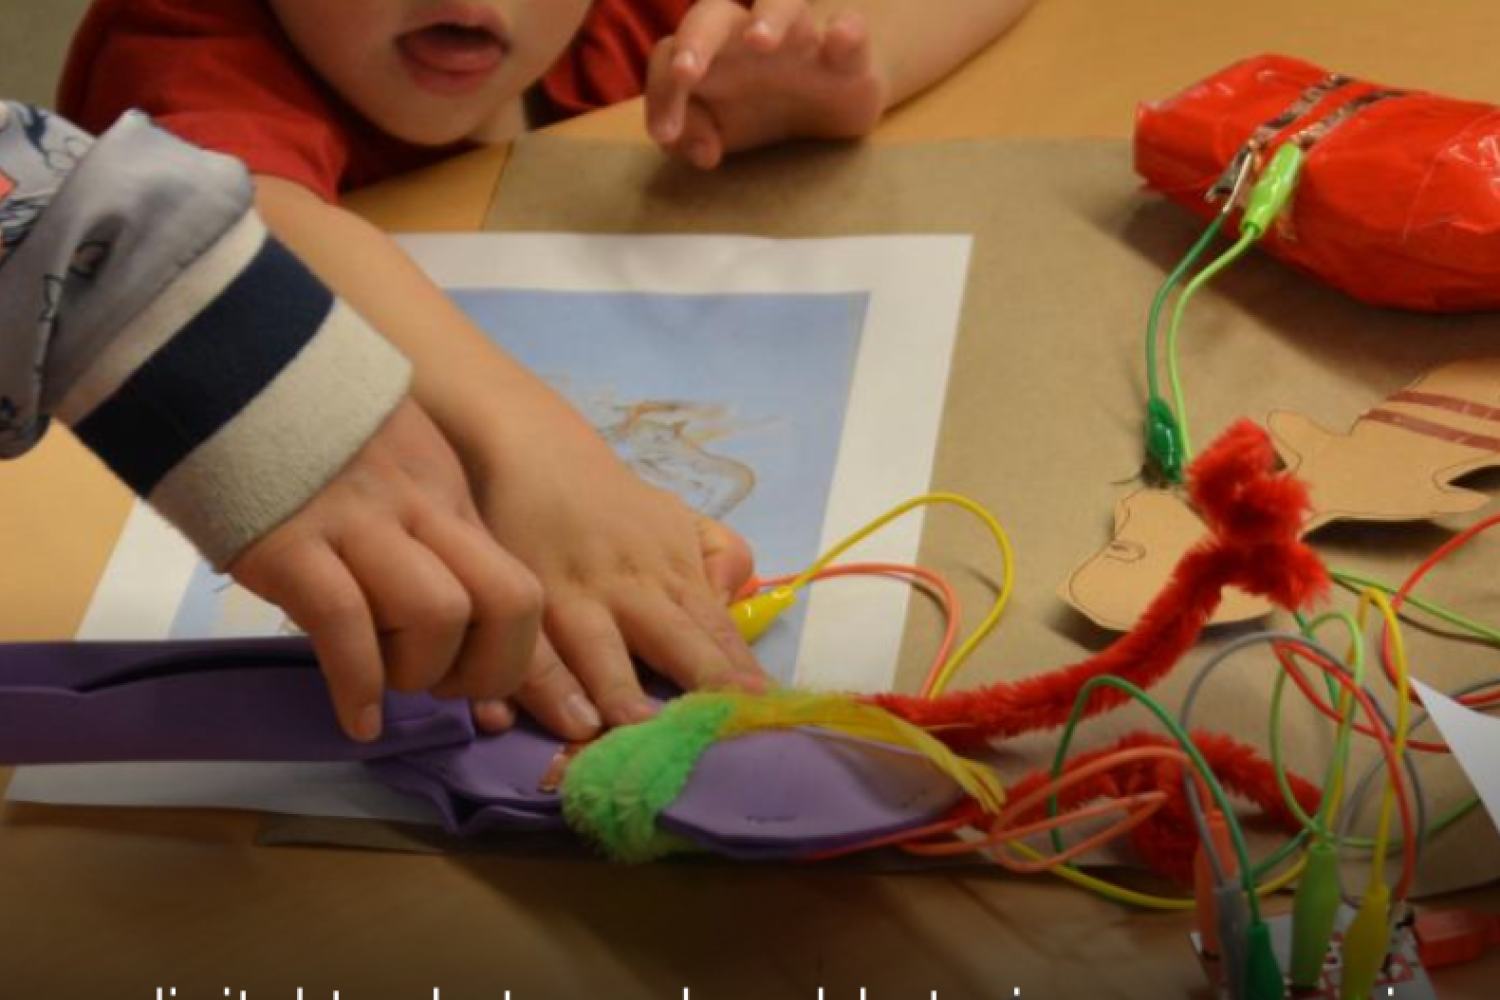 Children's hands working on a crafted page with construction paper, pipecleaners, and make makey board